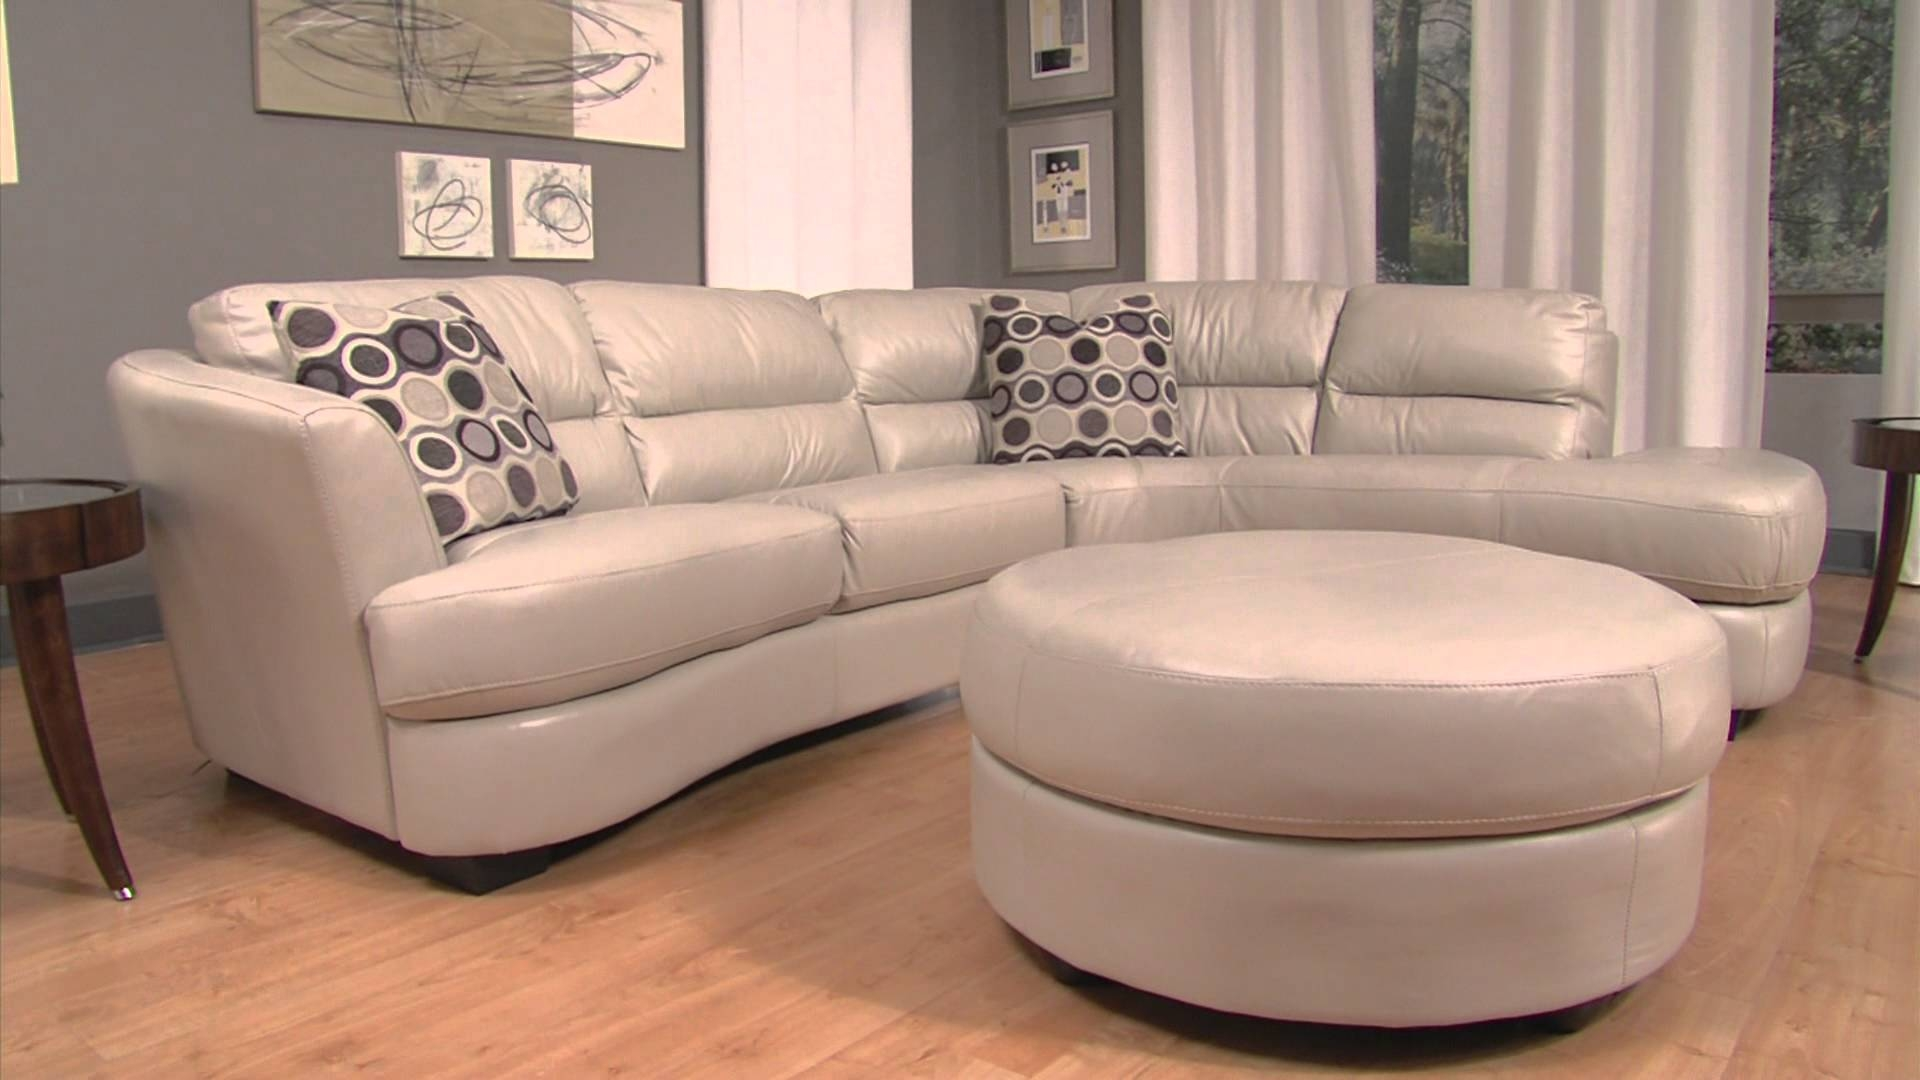 Sofas Center Costco Powerclining Sofa Leathercliner Sofas With Regard To Berkline Sectional Sofa (Image 15 of 15)